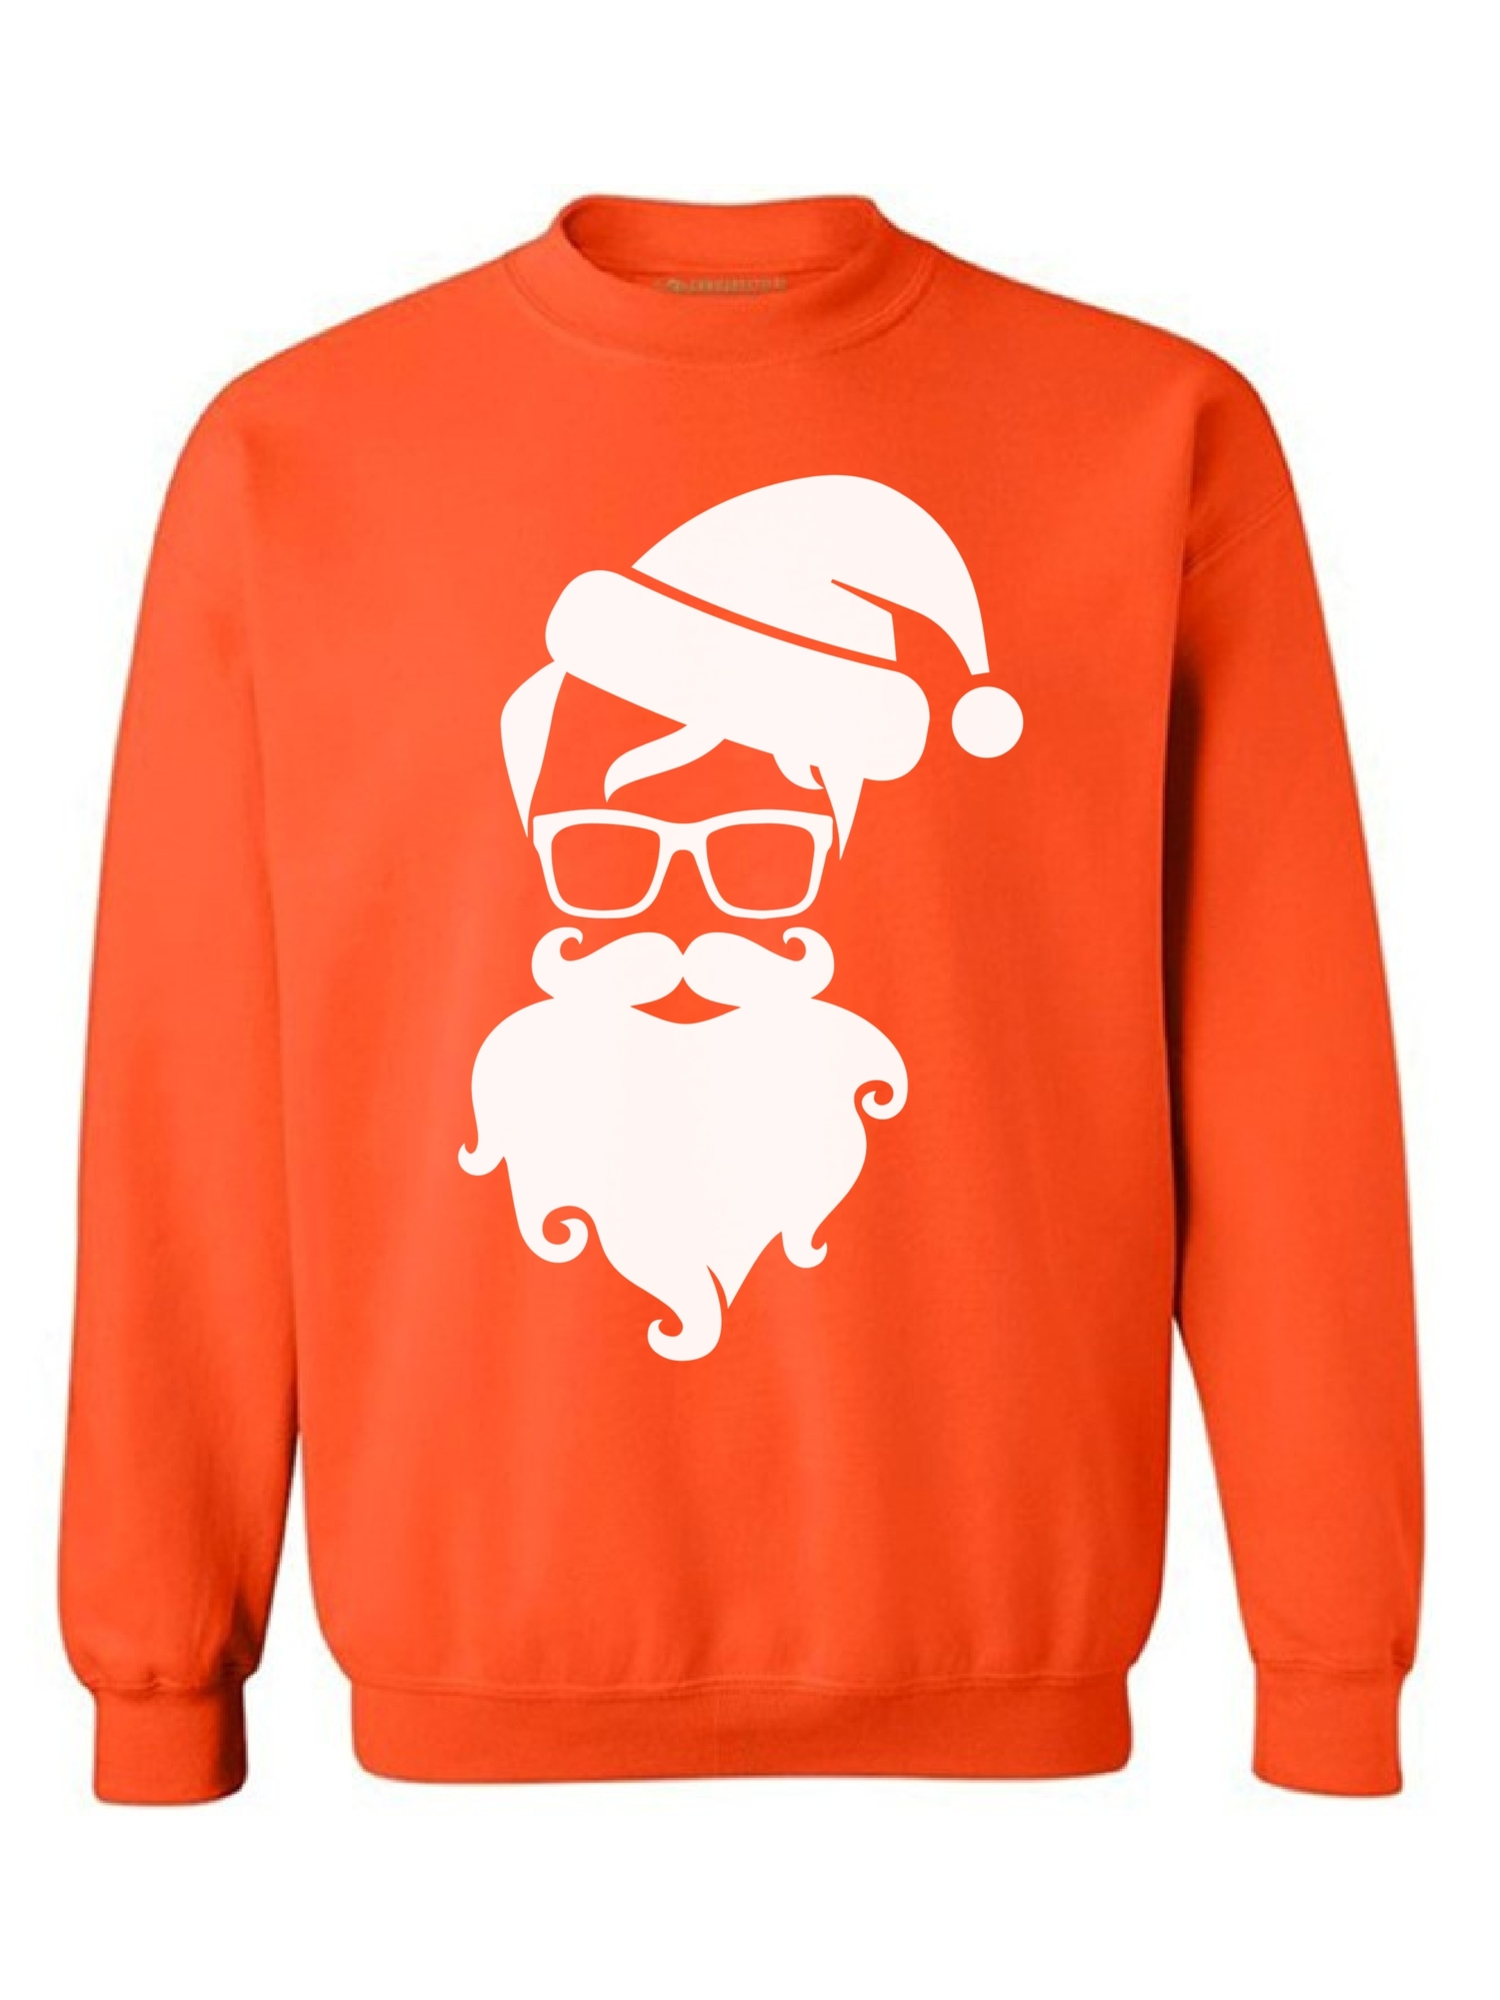 Awkward Styles Hipster Santa Sweater Christmas Sweatshirt Hipster Santa Claus with Glasses Christmas Sweater Modern Santa Christmas Sweatshirt for Men and for Women Hipster Holiday Sweatshirt